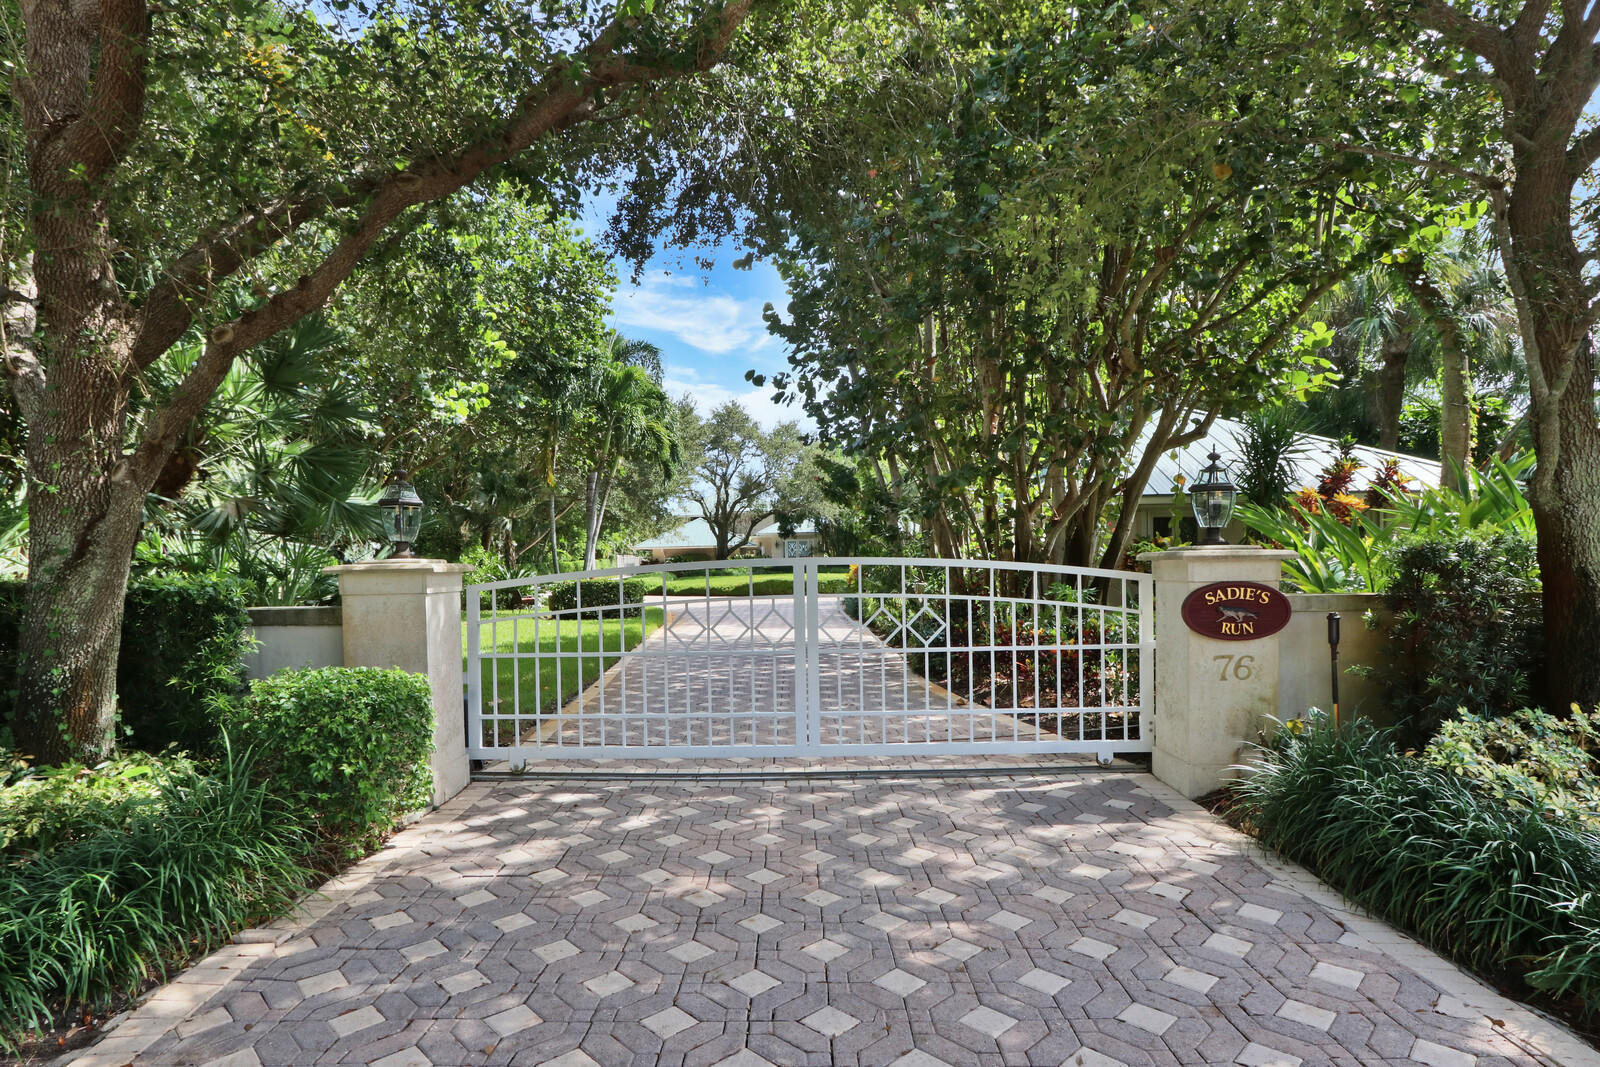 Home for sale in Homewood Sewalls Point Florida